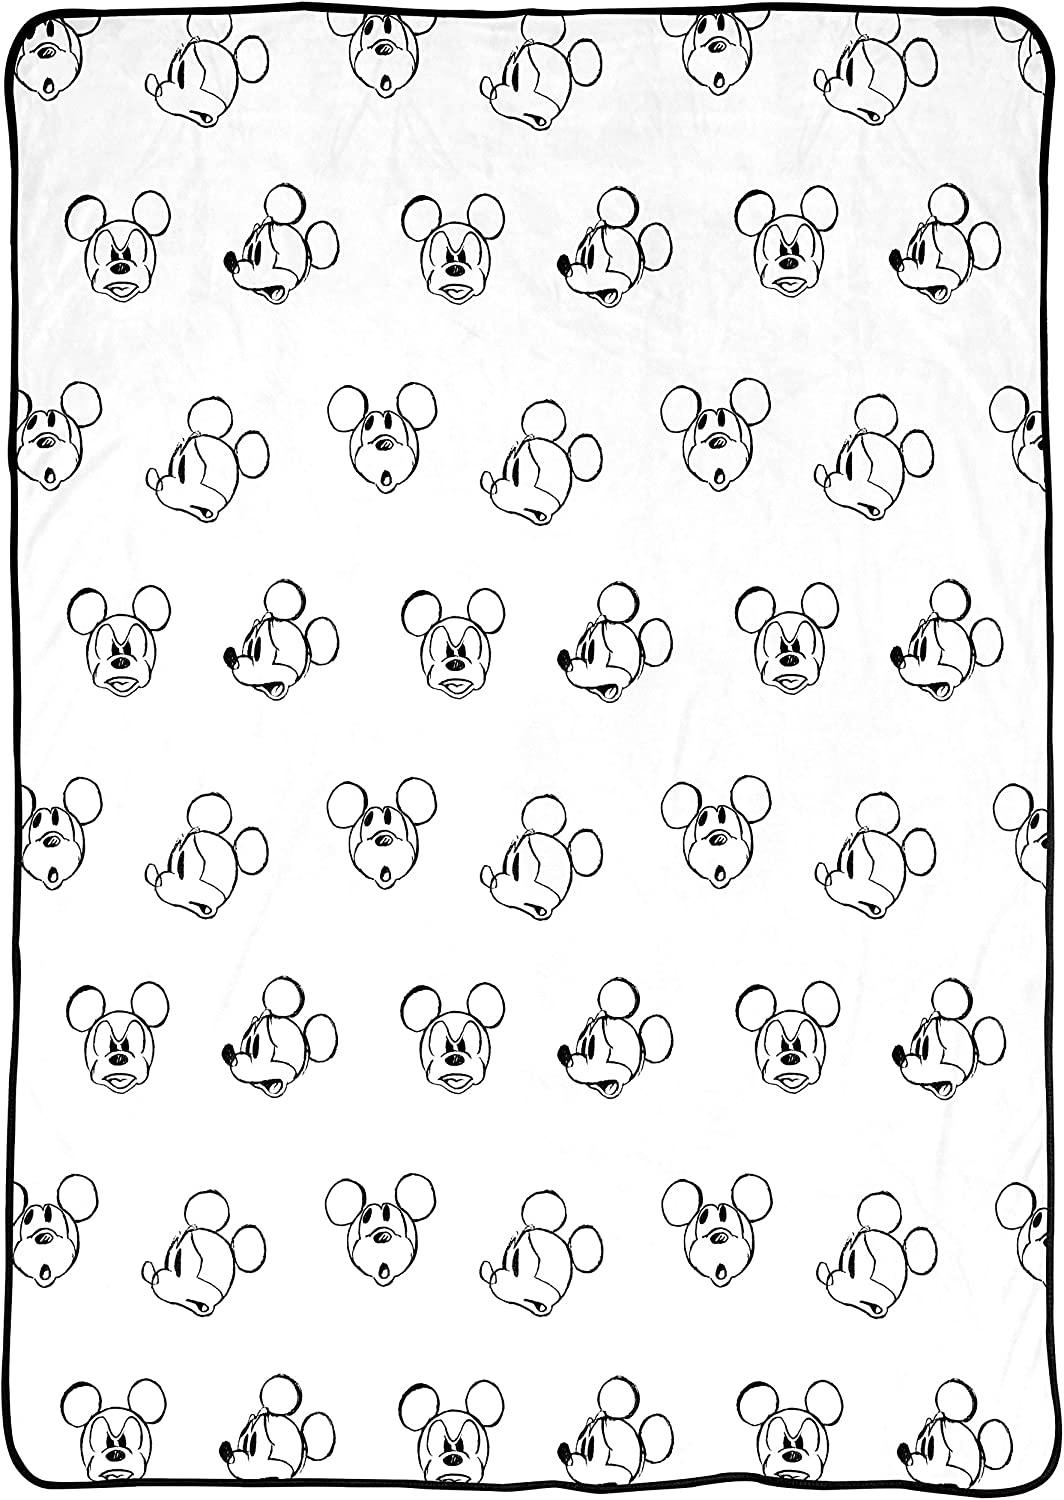 Disney Mickey Mouse Faces Blanket - x inches Measures 90 60 Ranking integrated 1st Shipping included place Bed